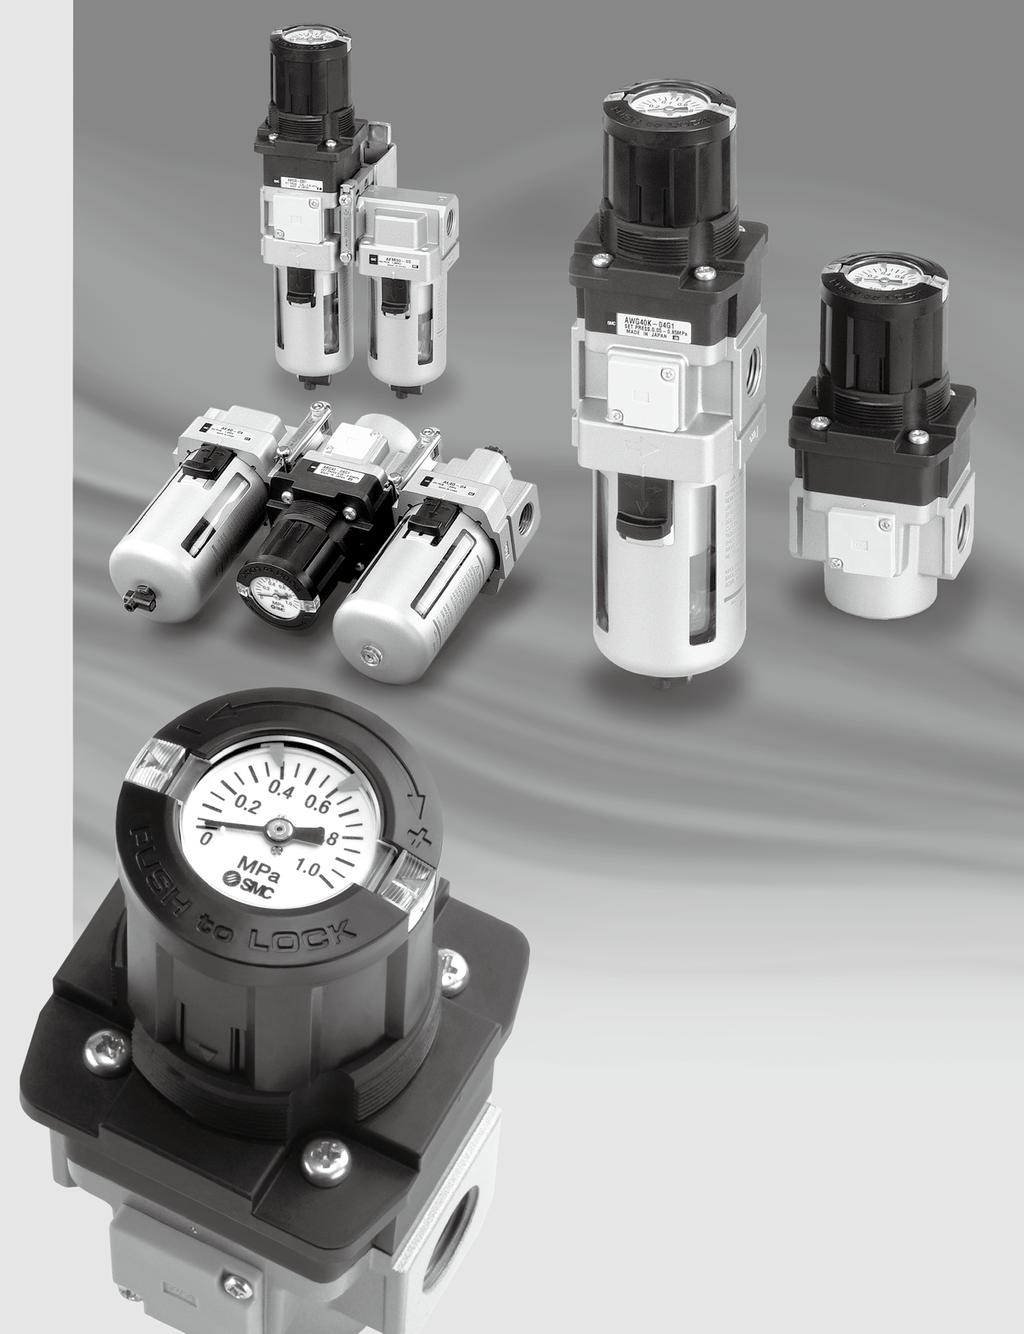 Regulator with uilt-in ressure auge ilter Regulator with uilt-in ressure auge Series /R/W - - - R- L- W- R L W V Visibility of pressure gauge is